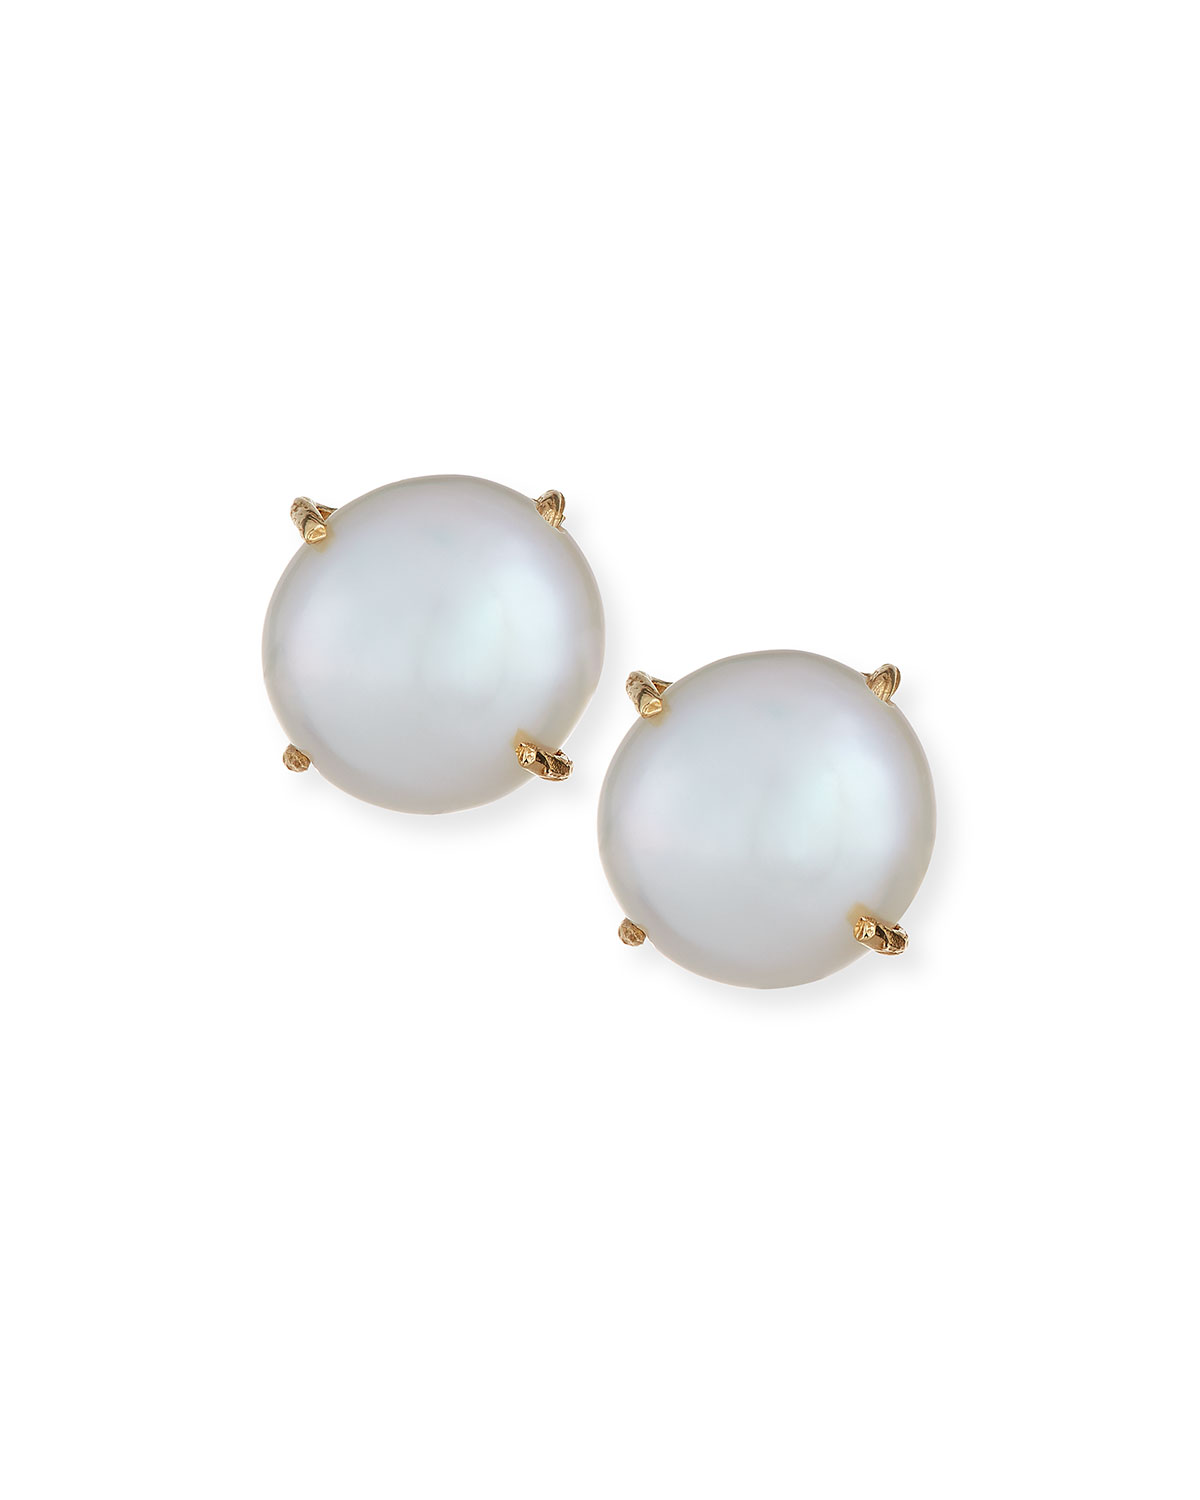 a5f11fa1e Margo Morrison Prong-Set Pearl Stud Earrings | Neiman Marcus